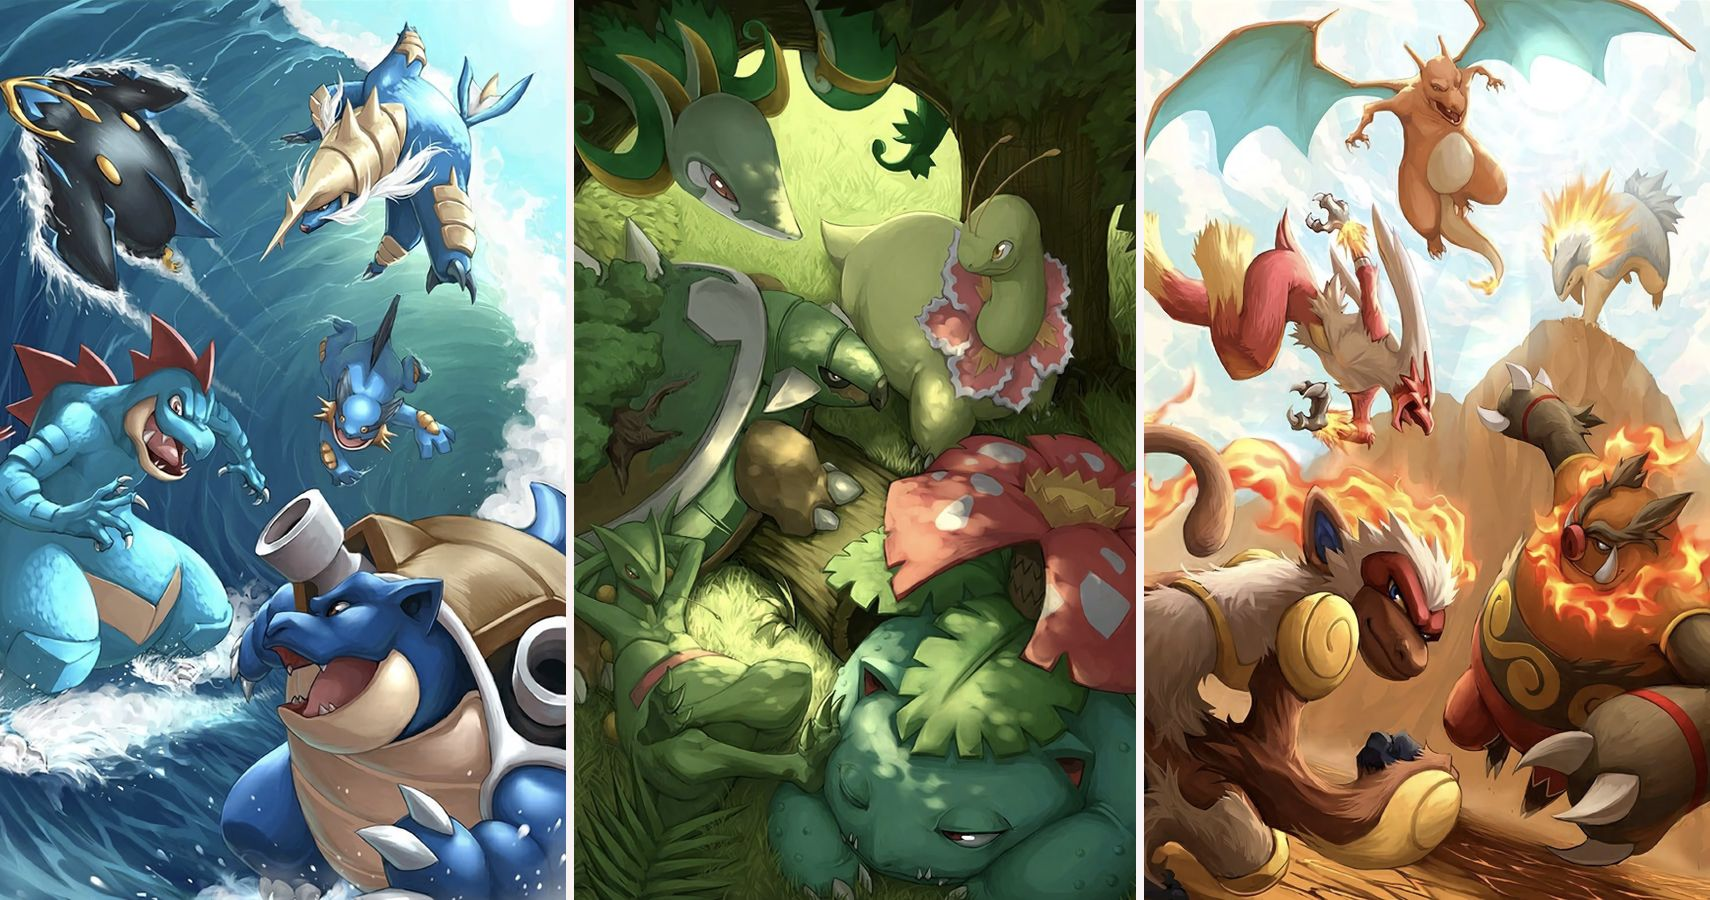 Pokémon: Ranking The Elemental Types From Worst To Best